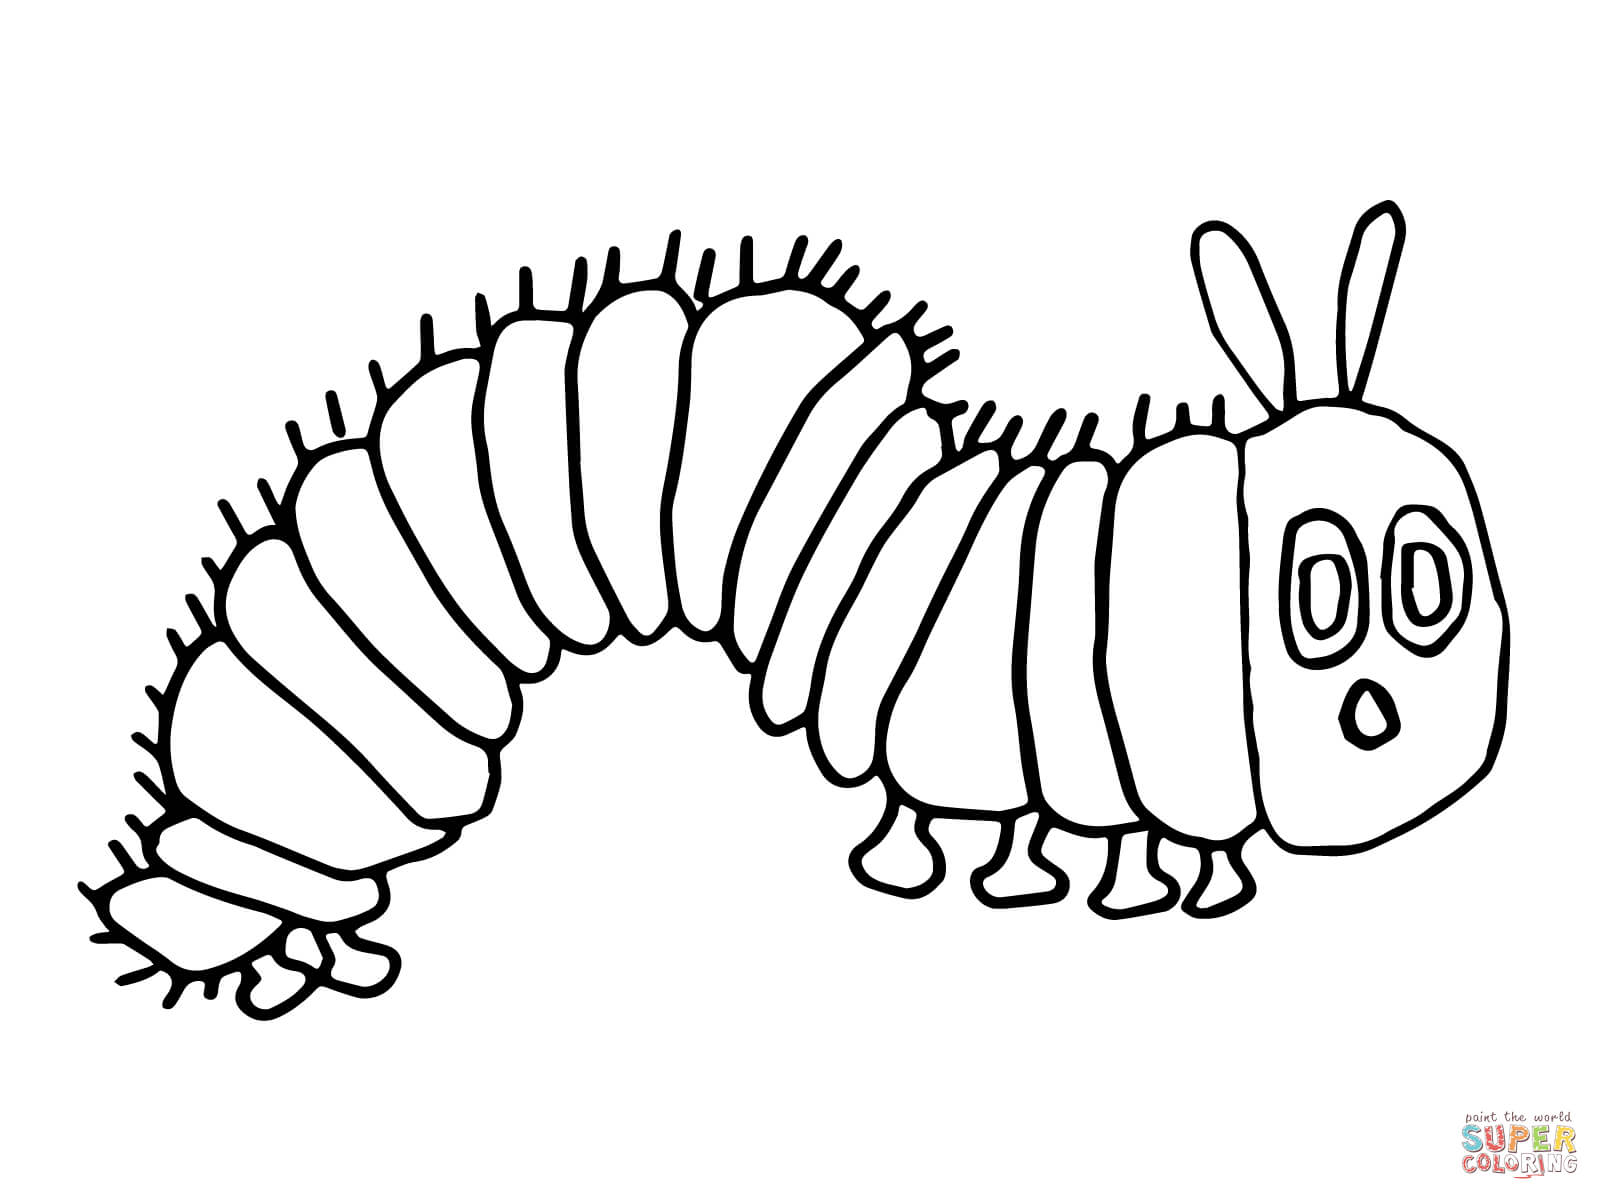 Free Printable Eric Carle Coloring Pages Wonderful - Coloring pages